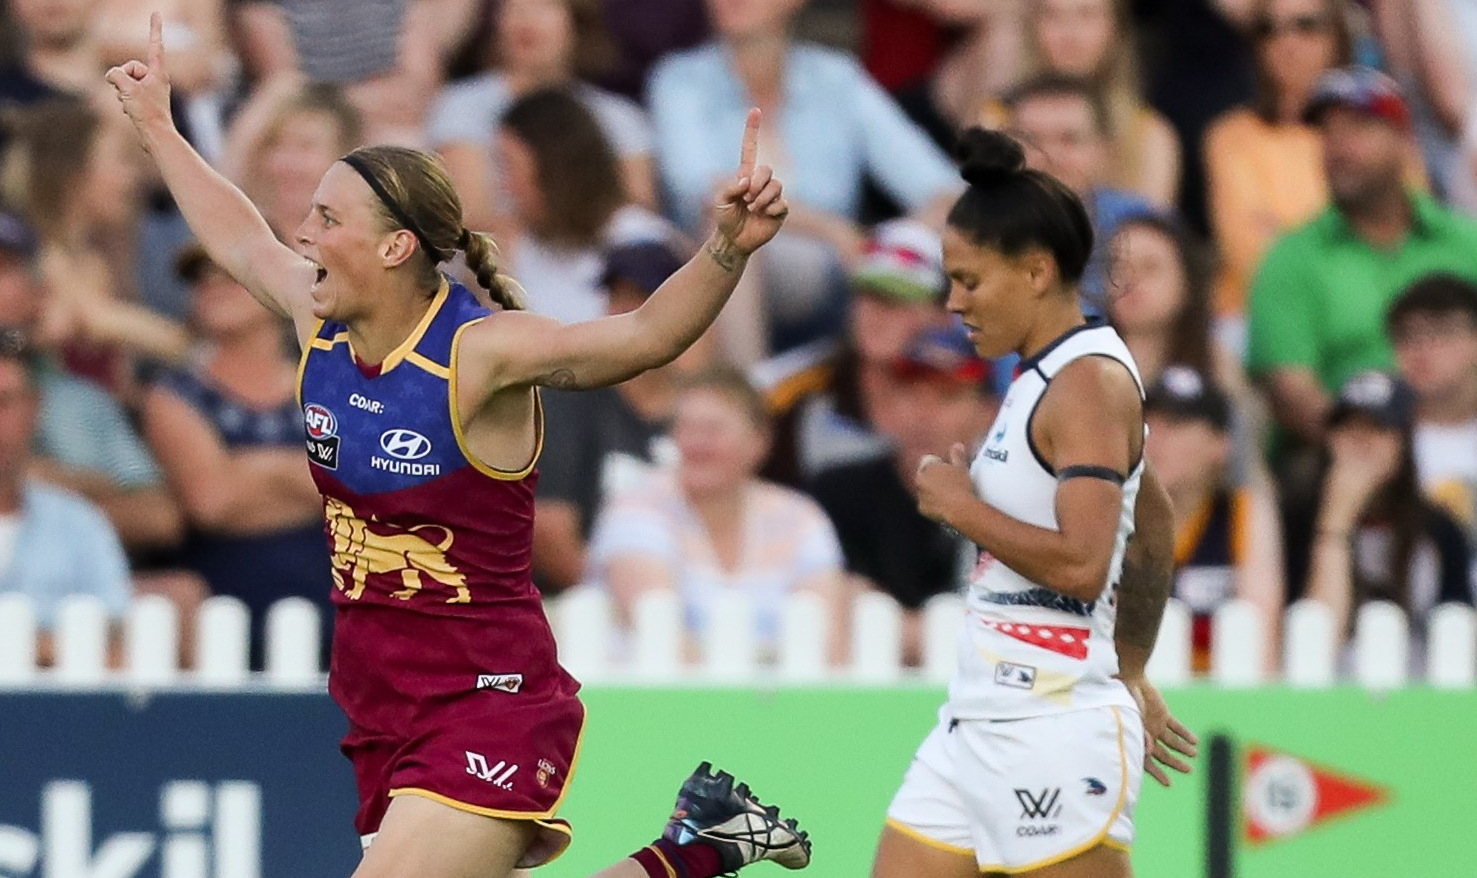 ADELAIDE, AUSTRALIA - MARCH 4: Kate Lutkins of the Lions celebrates a goal during the 2017 AFLW Round 05 match between the Adelaide Crows and the Brisbane Lions at Norwood Oval on March 4, 2017 in Adelaide, Australia. (Photo by AFL Media)